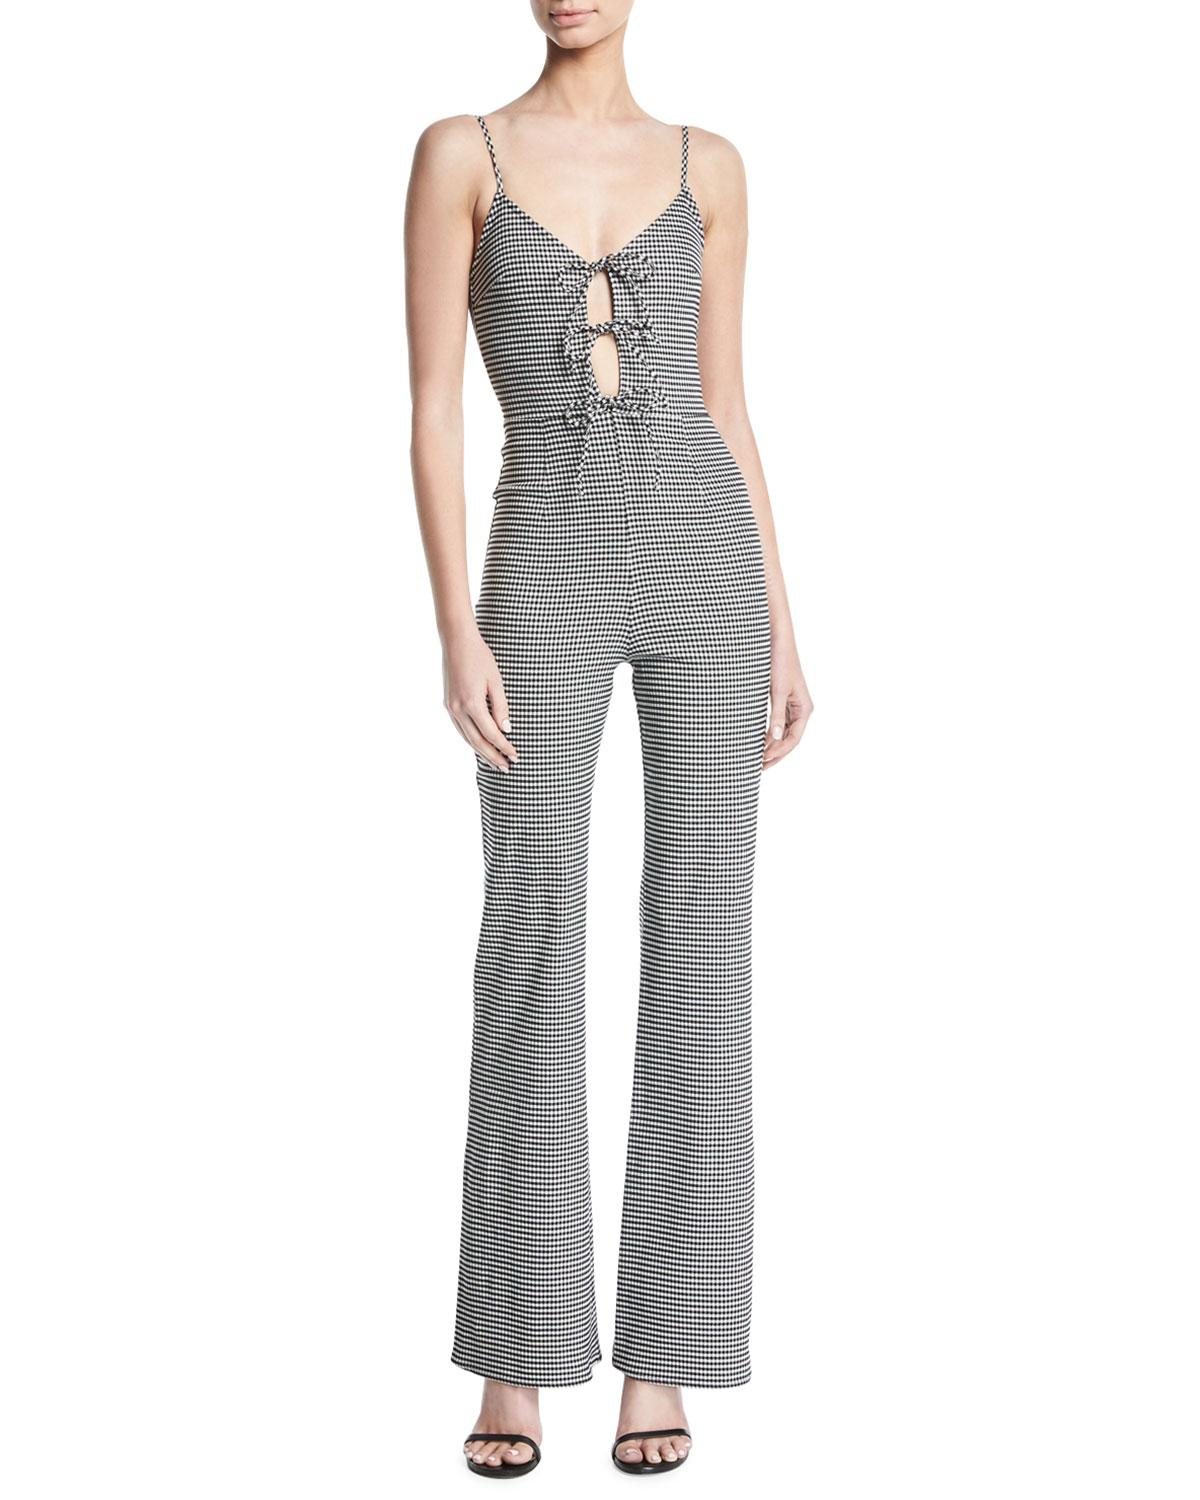 36f941e730 Lyst - Lovers + Friends Nell Tie-front Gingham Jumpsuit in Black